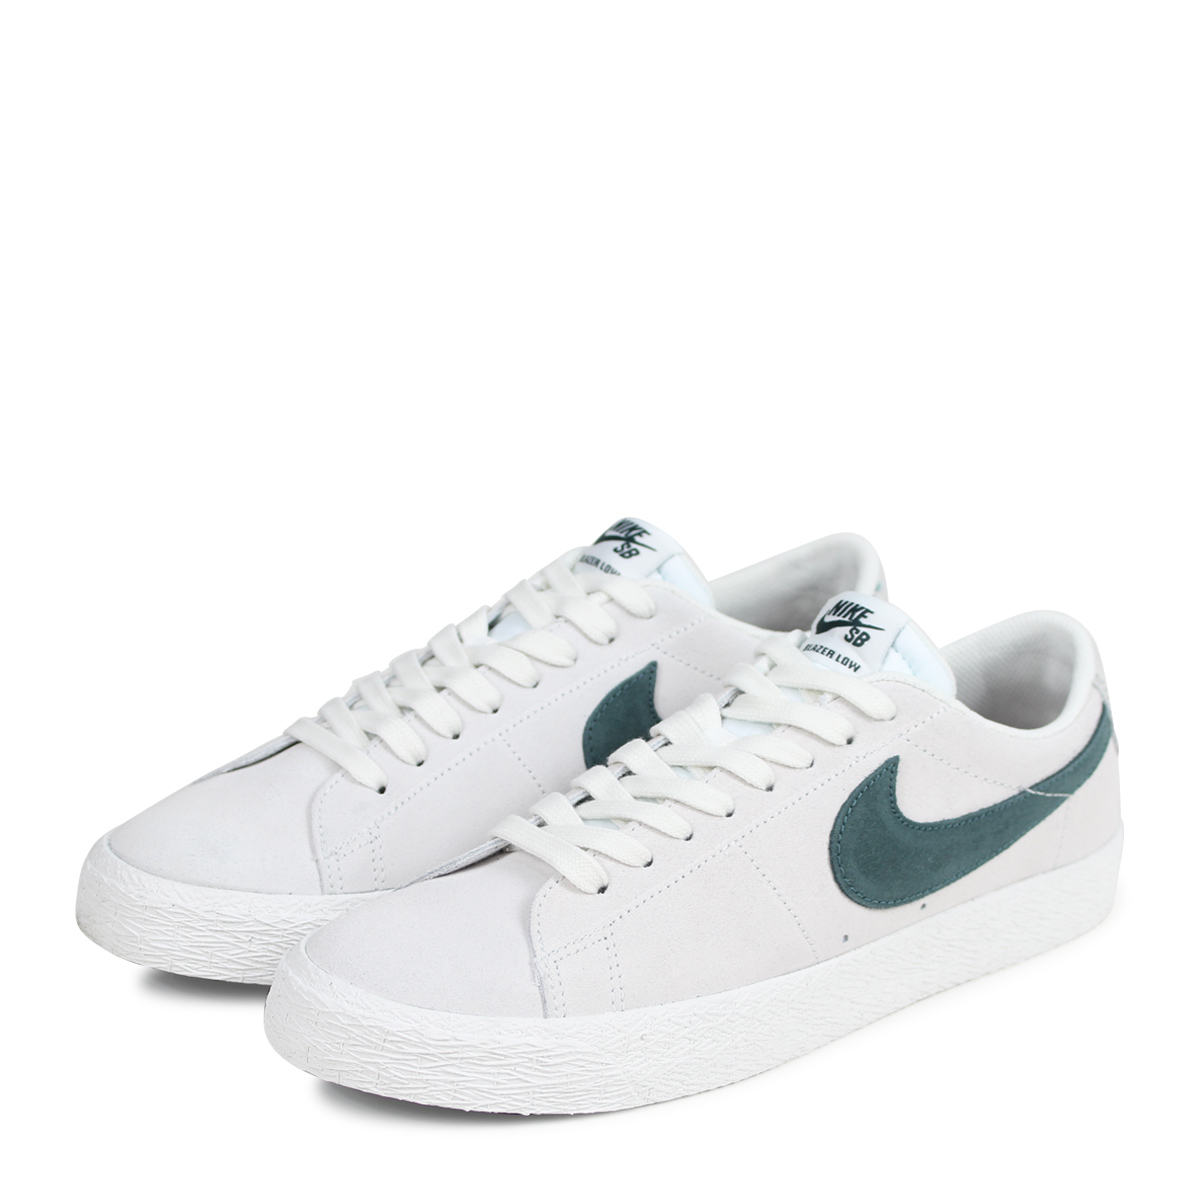 pretty nice 30725 9bd0a NIKE BLAZER ZOOM LOW Nike SB blazer low sneakers men 864,347-101 off-white  [load planned Shinnyu load in reservation product 3/30 containing] [183]